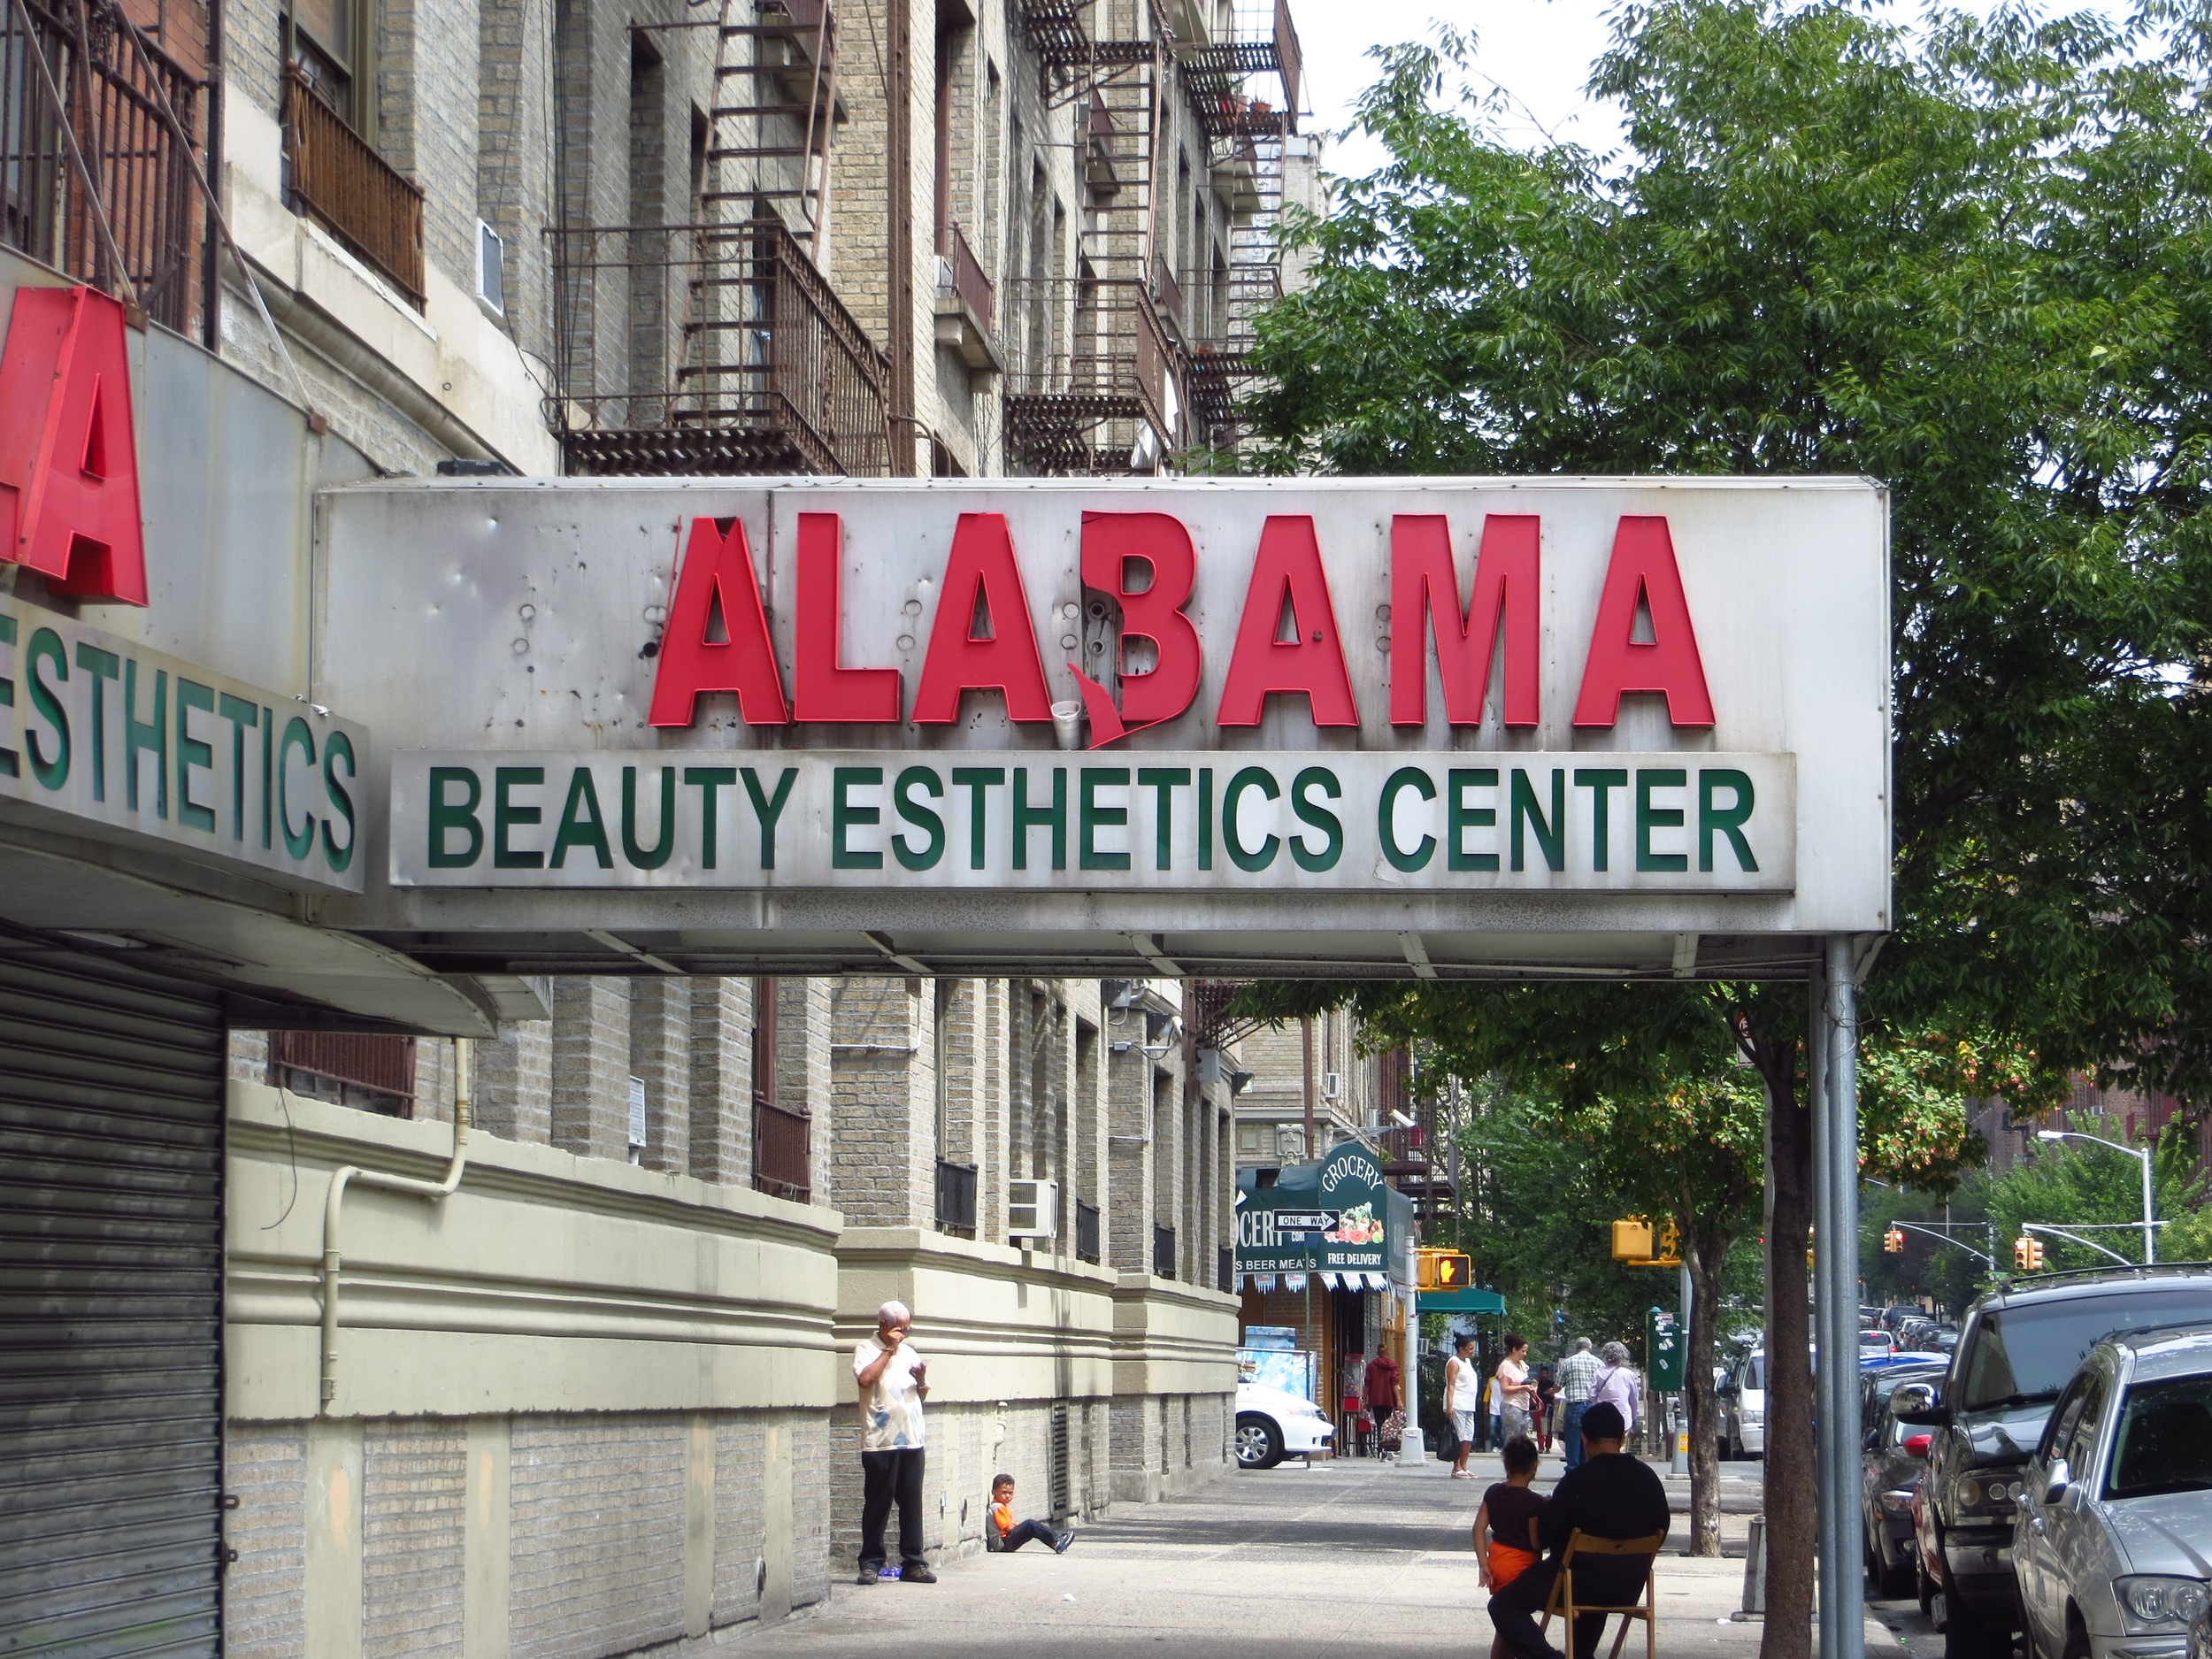 """I was going to make a joke about how they misspelled """"aesthetics"""", but thankfully I Googled the word first."""